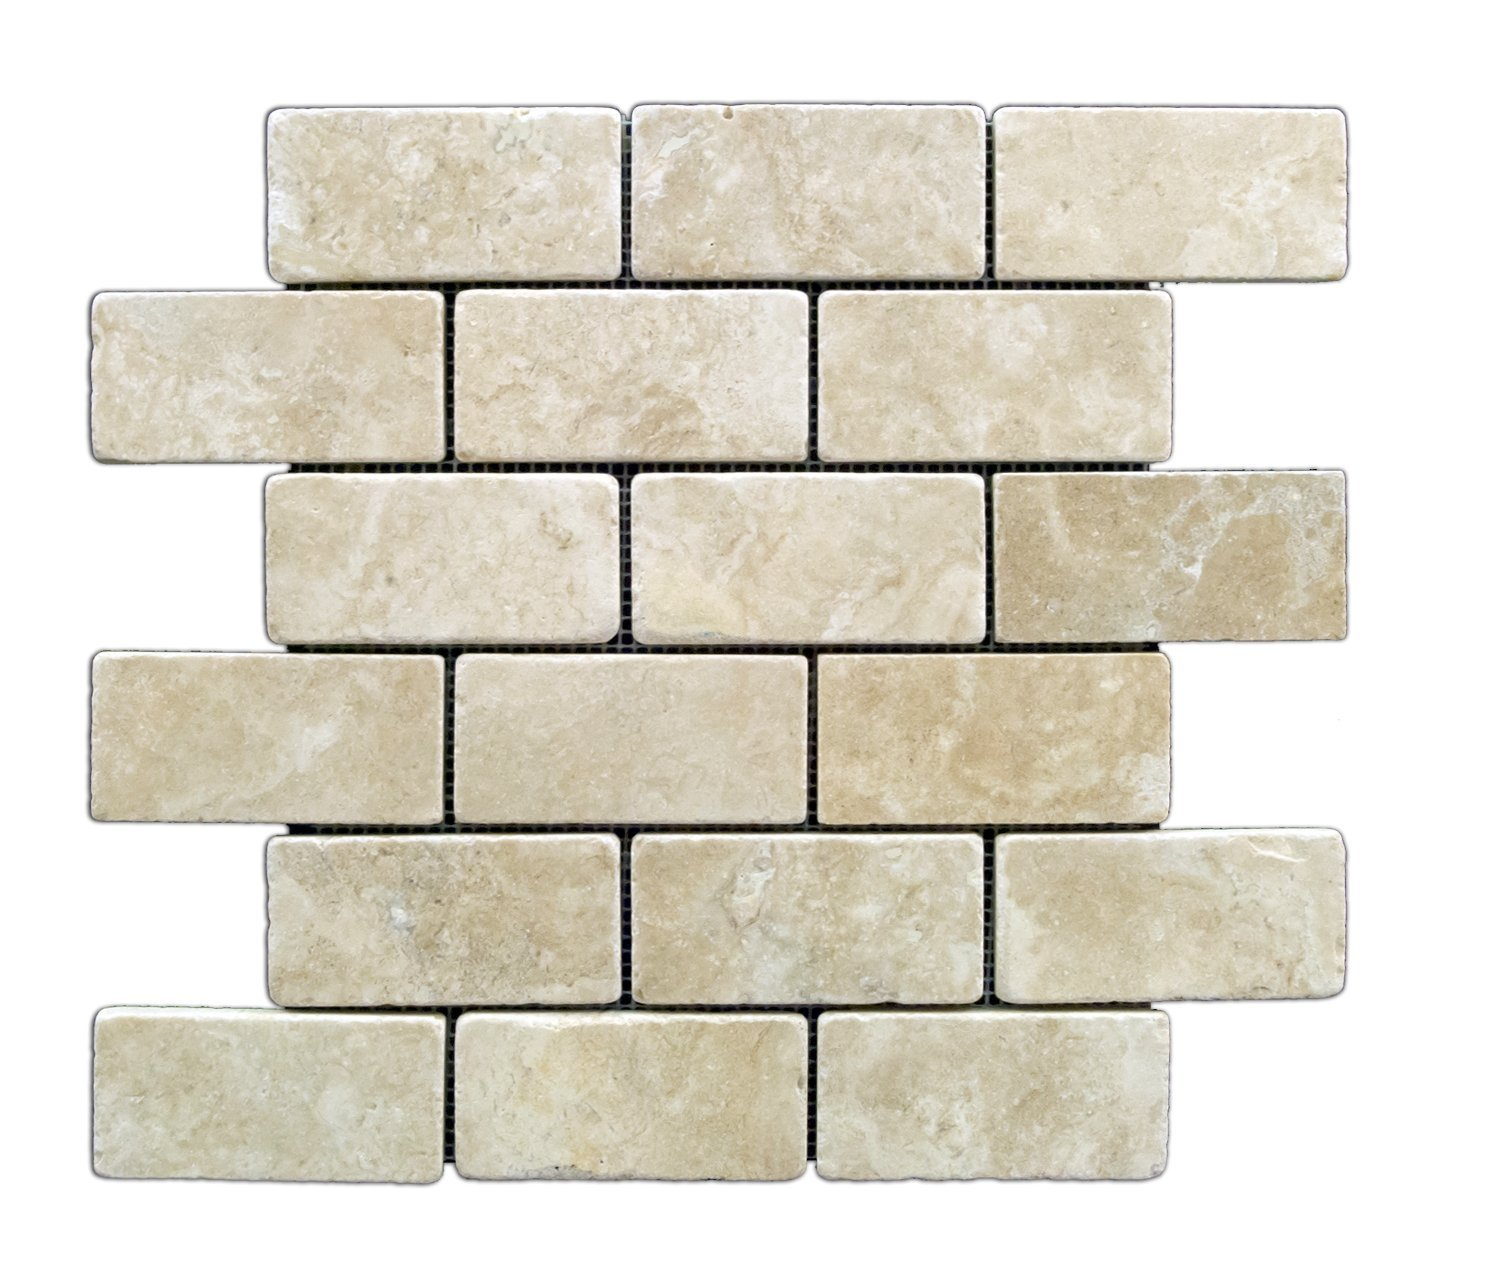 Buy Durango Cream 2 X 4 Tumbled Travertine Brick Mosaic Tile 6 X 6